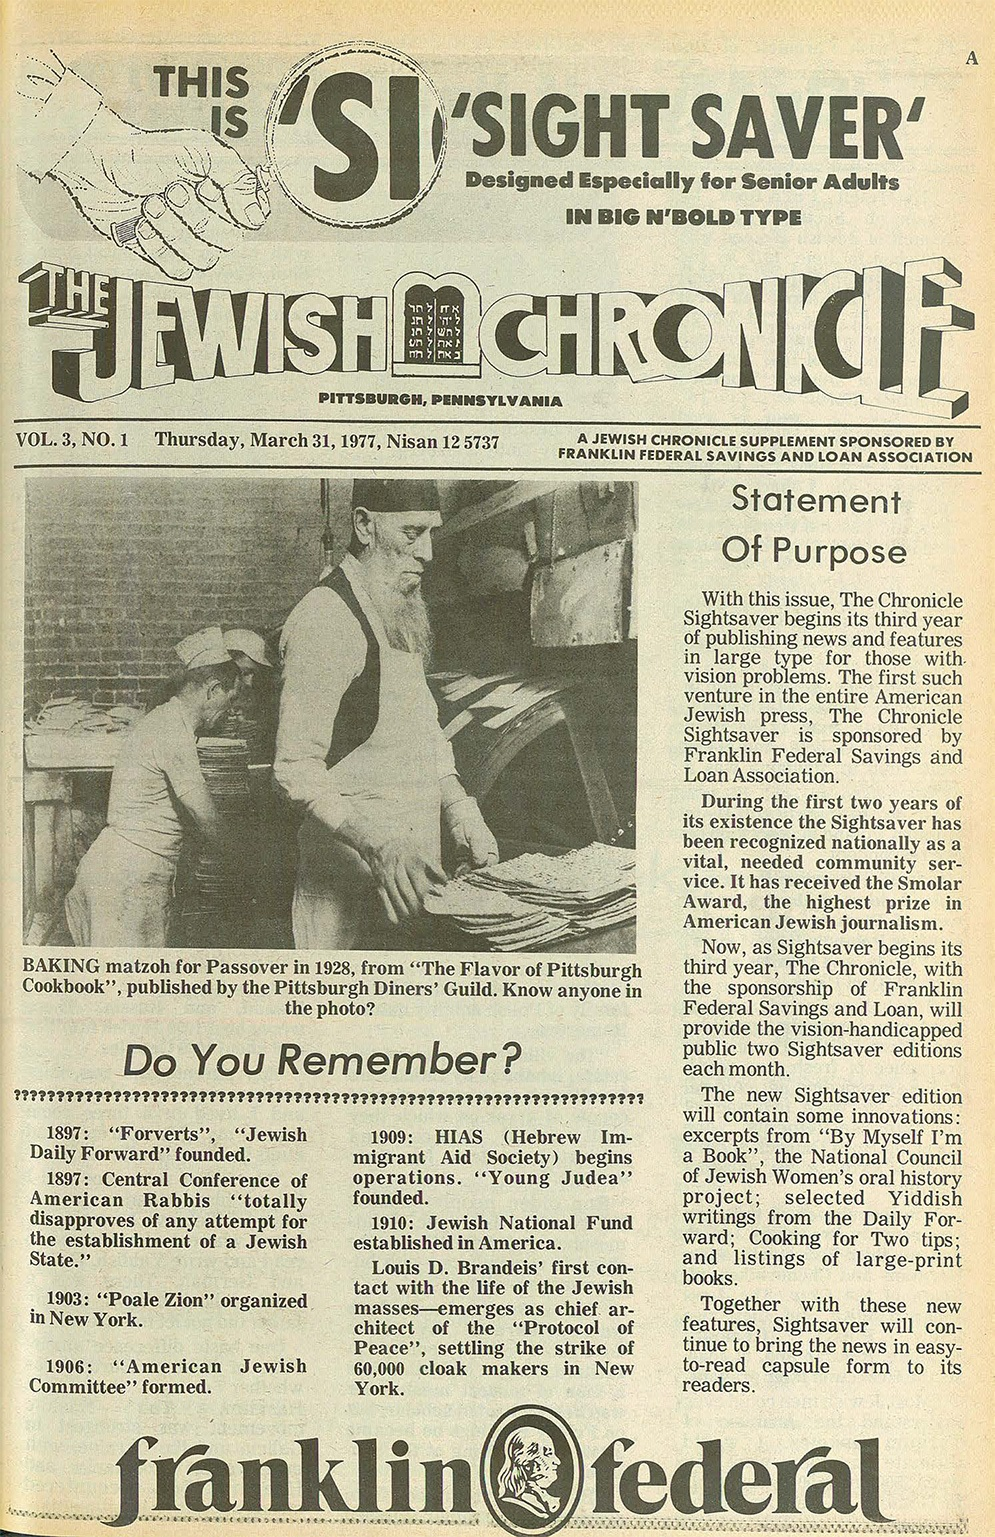 The photograph of Jacob Radbord inspecting matzah is among the best-known in the Rauh Jewish Archive. The local Jewish Chronicle has reprinted it at least twice.